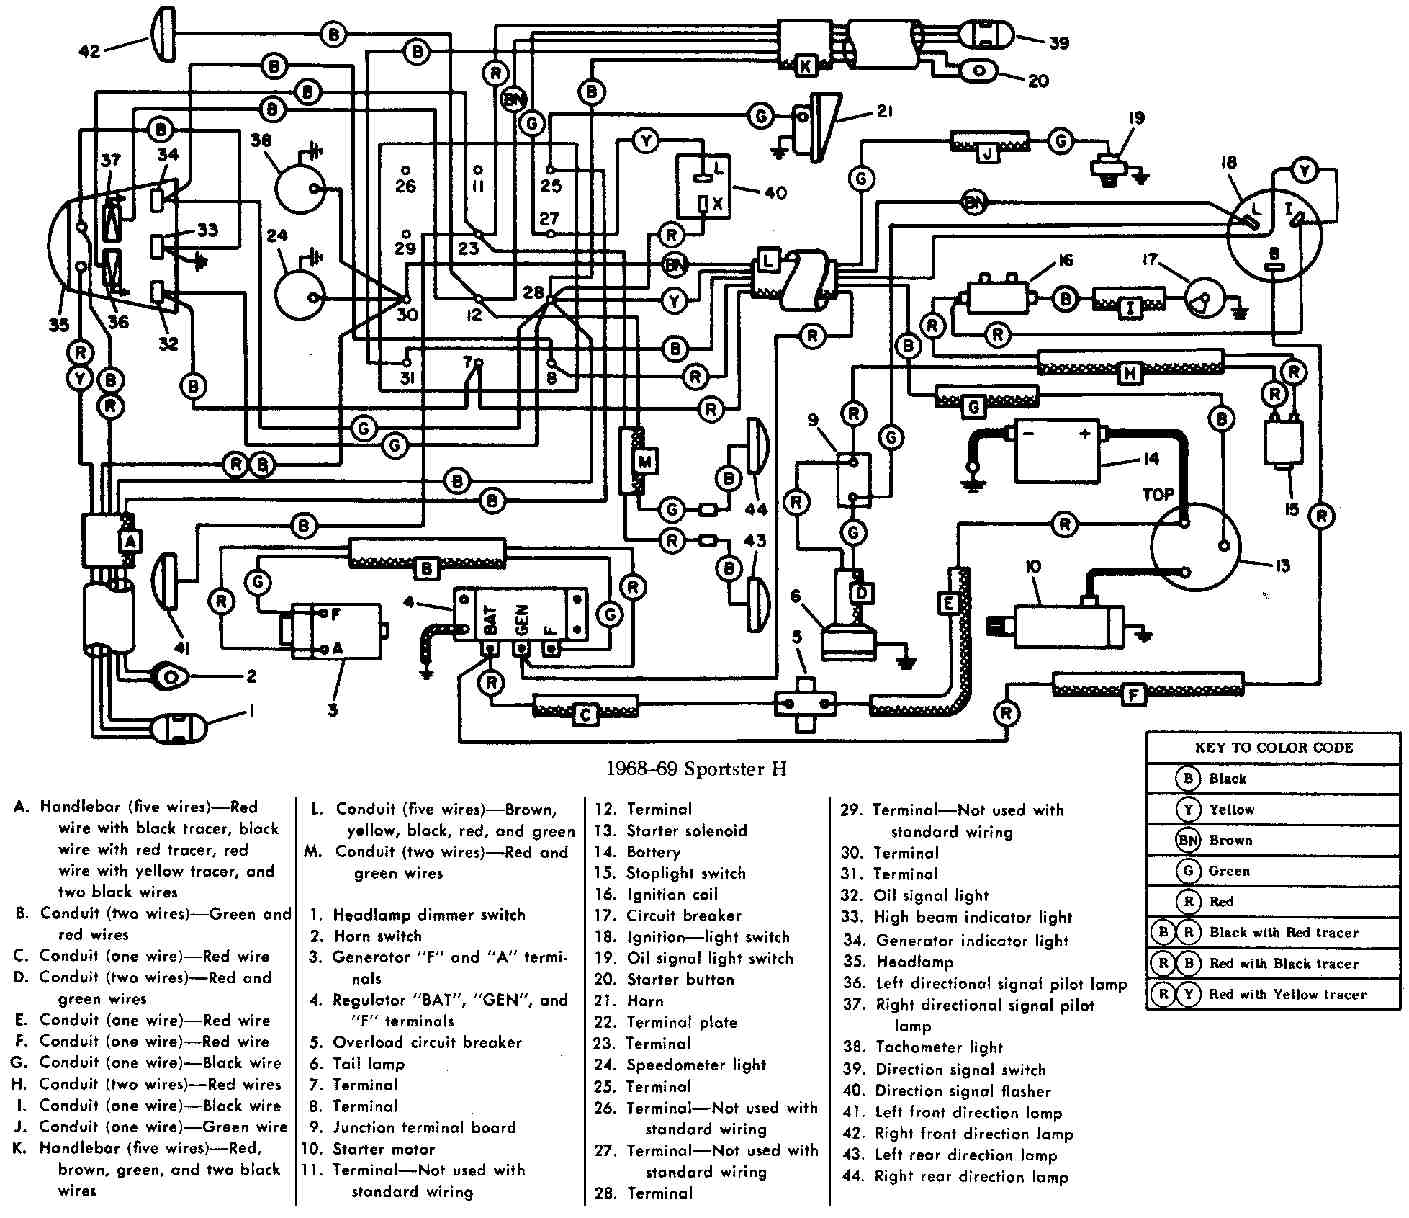 harley davidson wiring diagram power wheels harley davidson wiring diagram